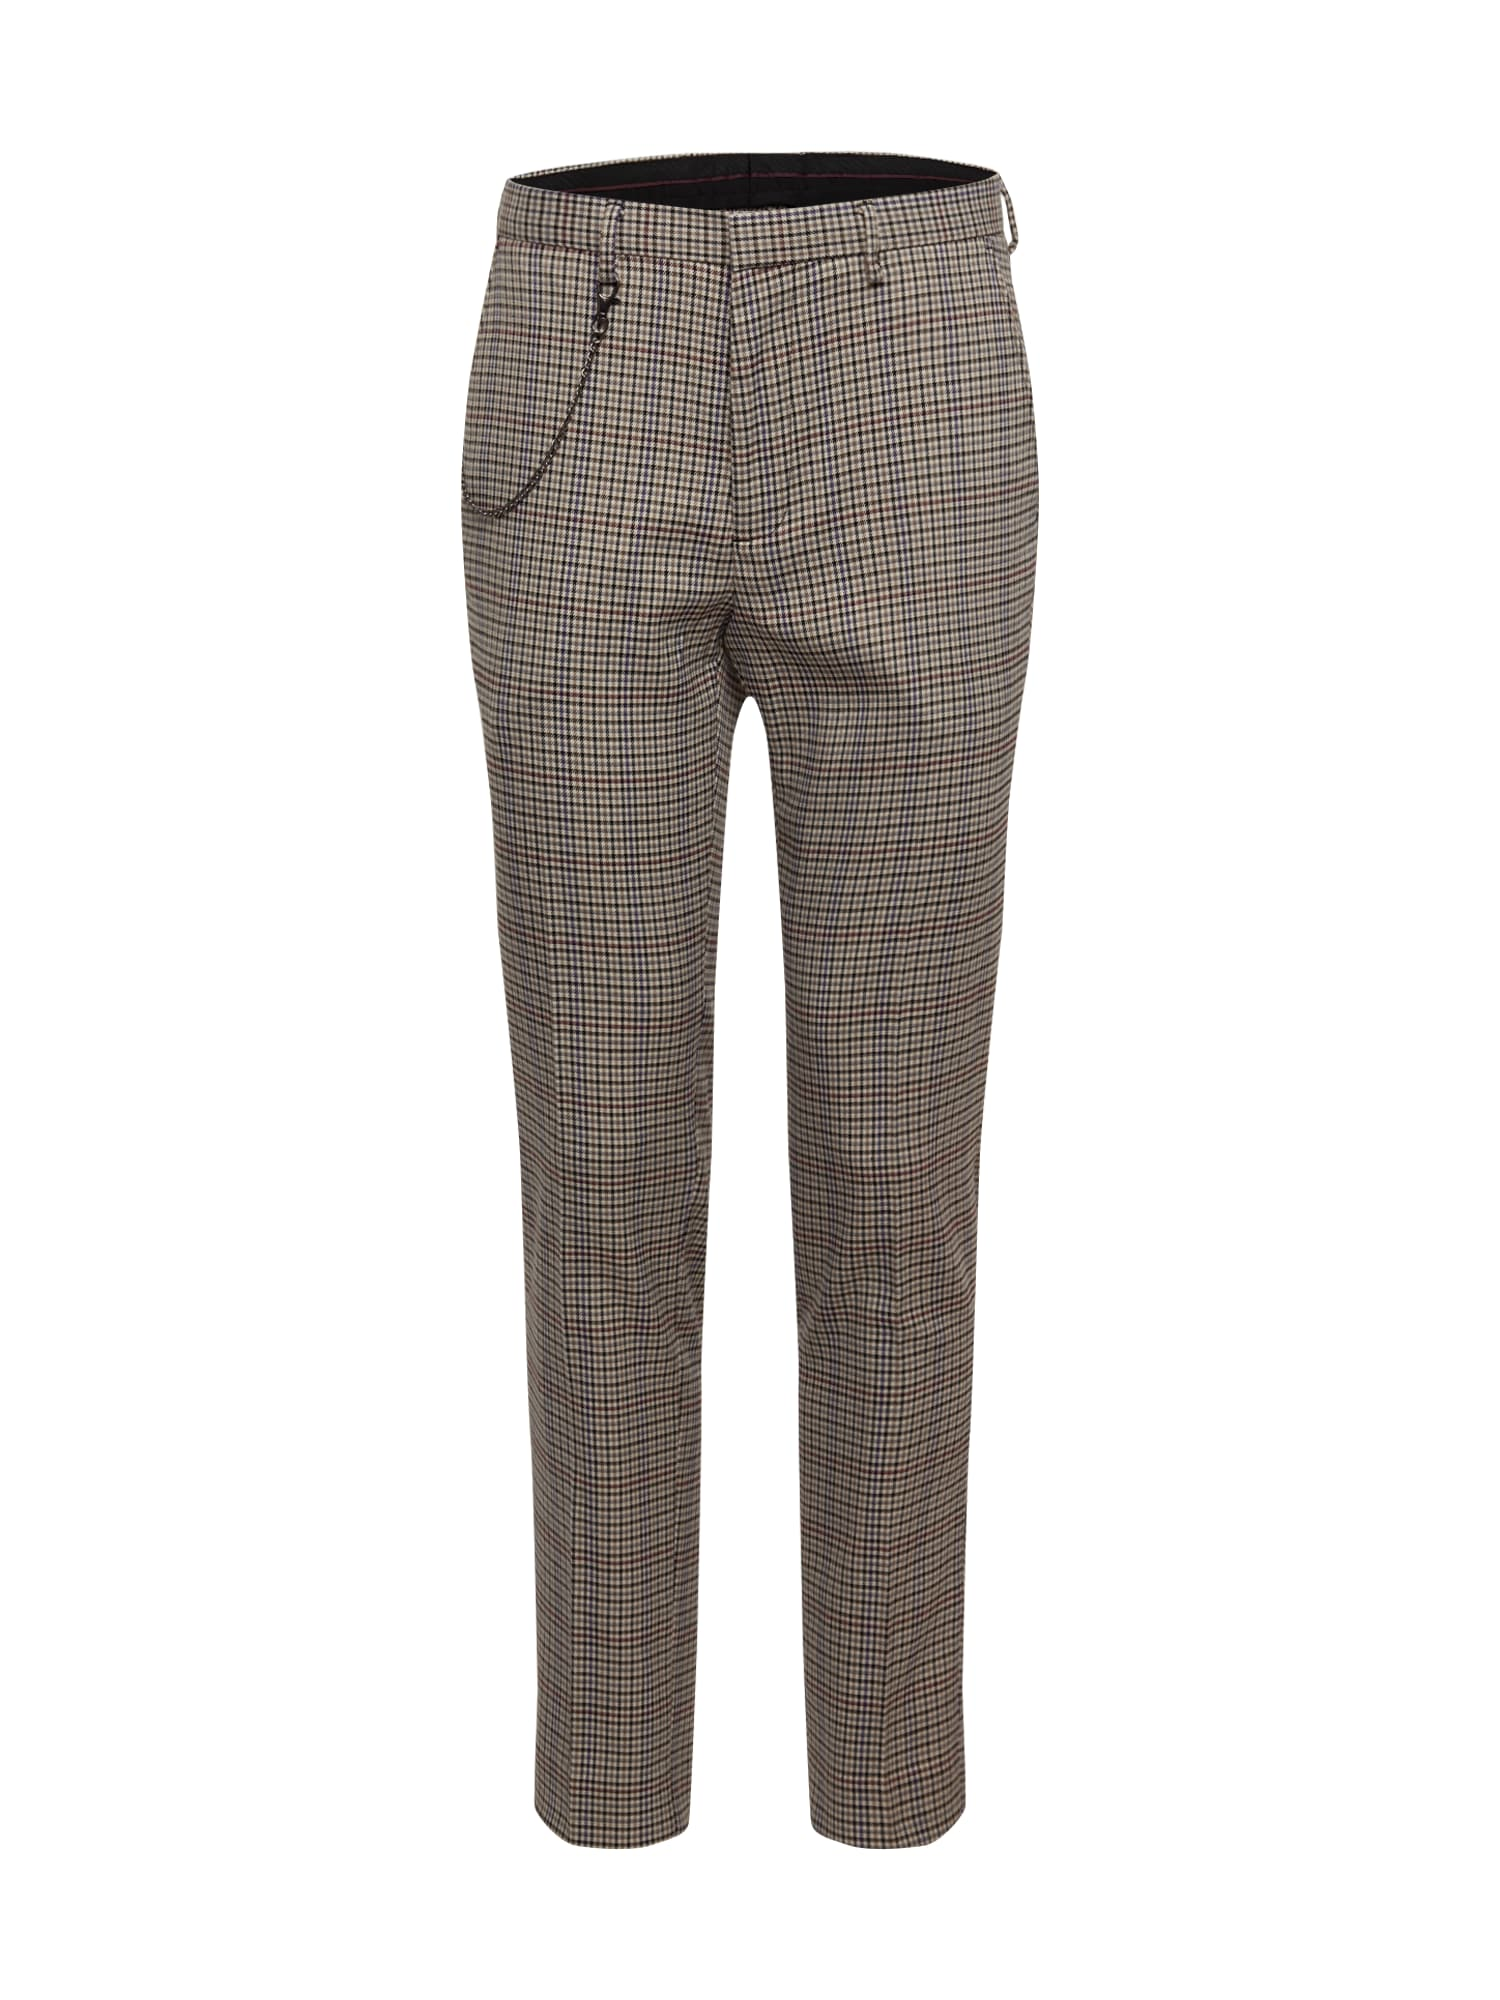 BURTON MENSWEAR LONDON Kelnės 'TP MULTI HOUSE CHECK' pilka